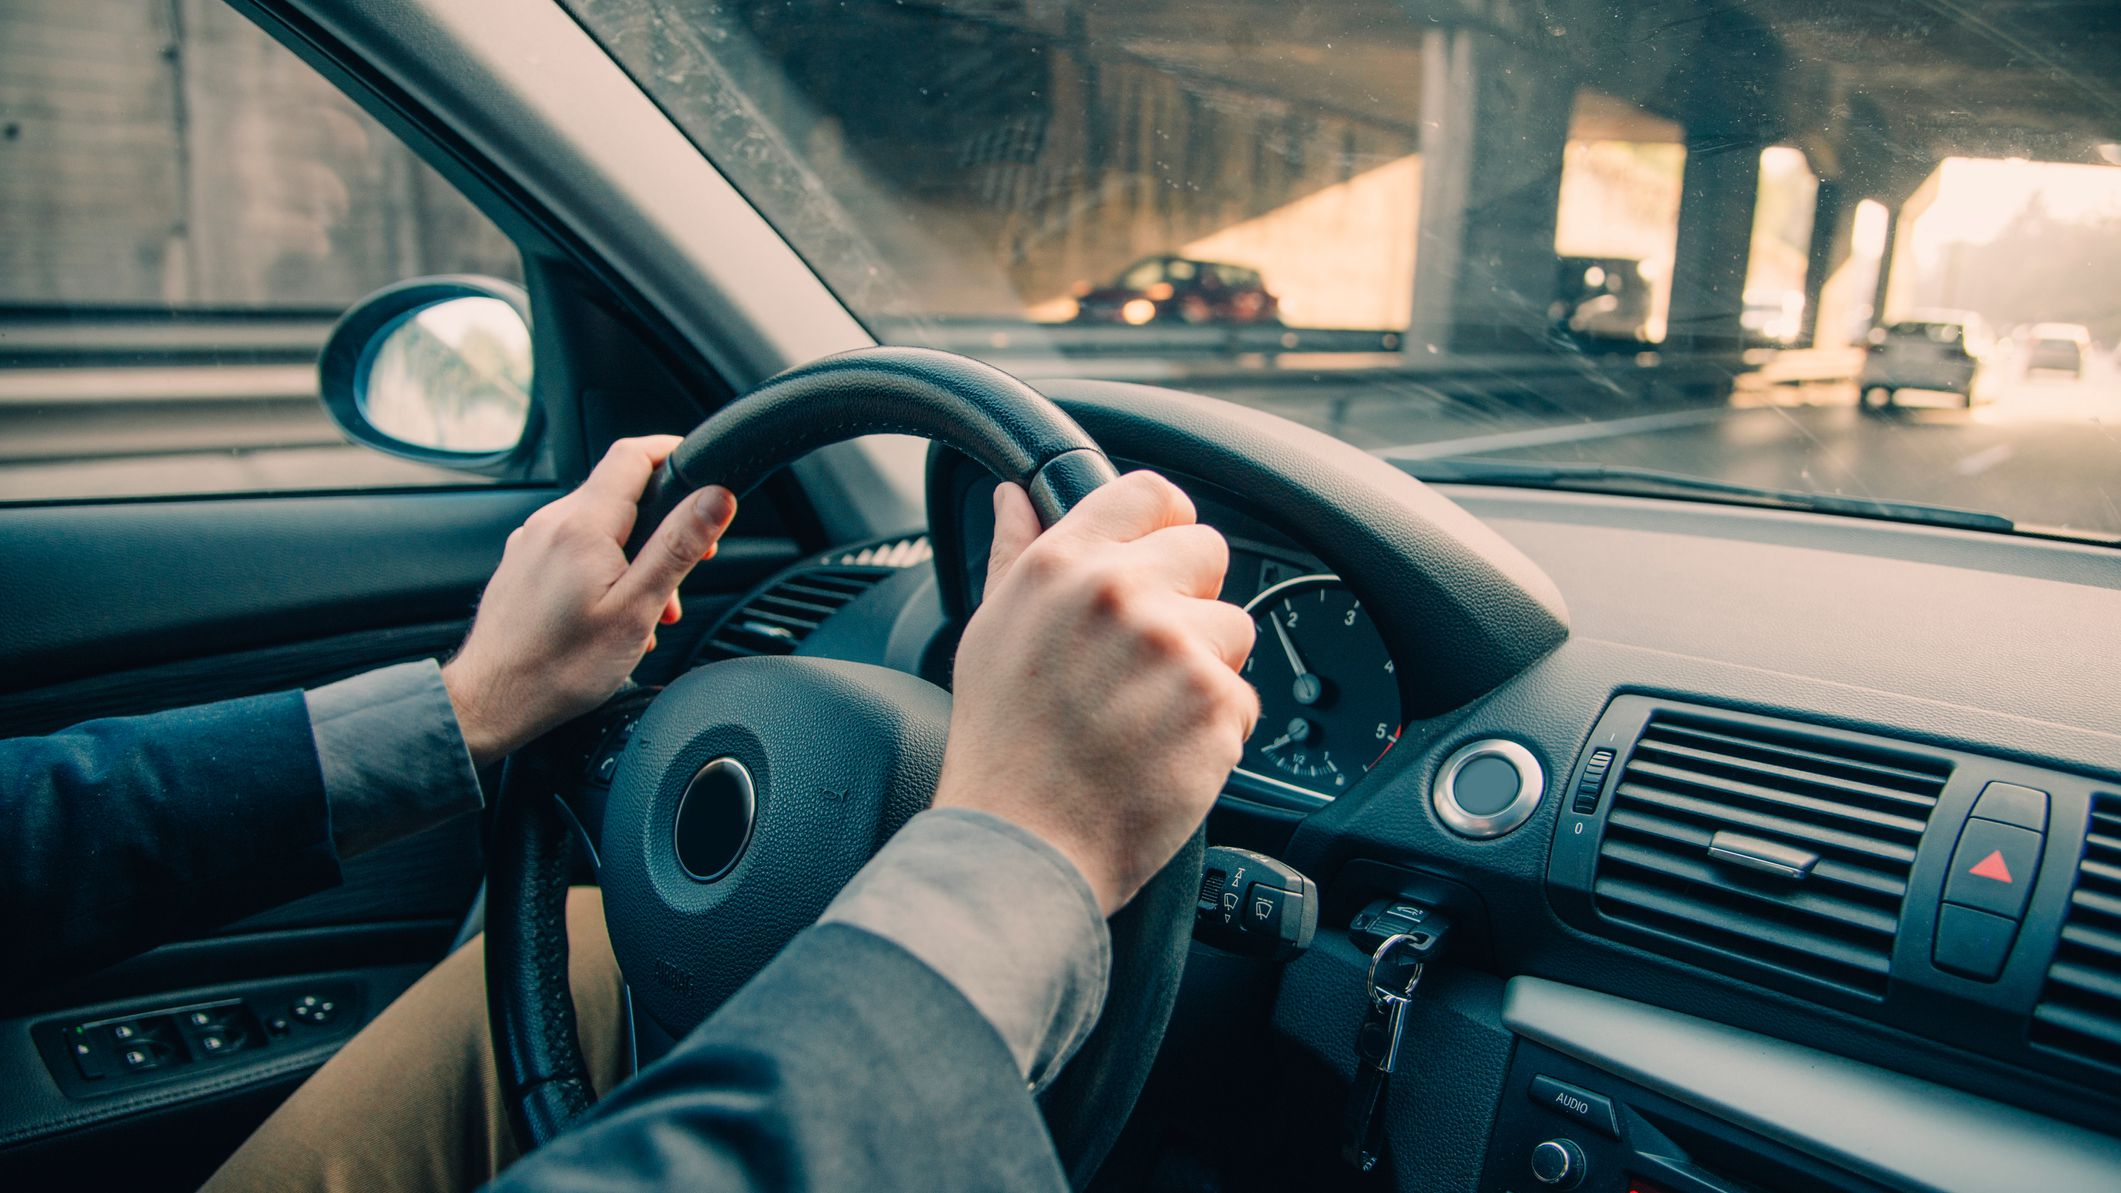 How To Fix Steering Wheel Shimmy